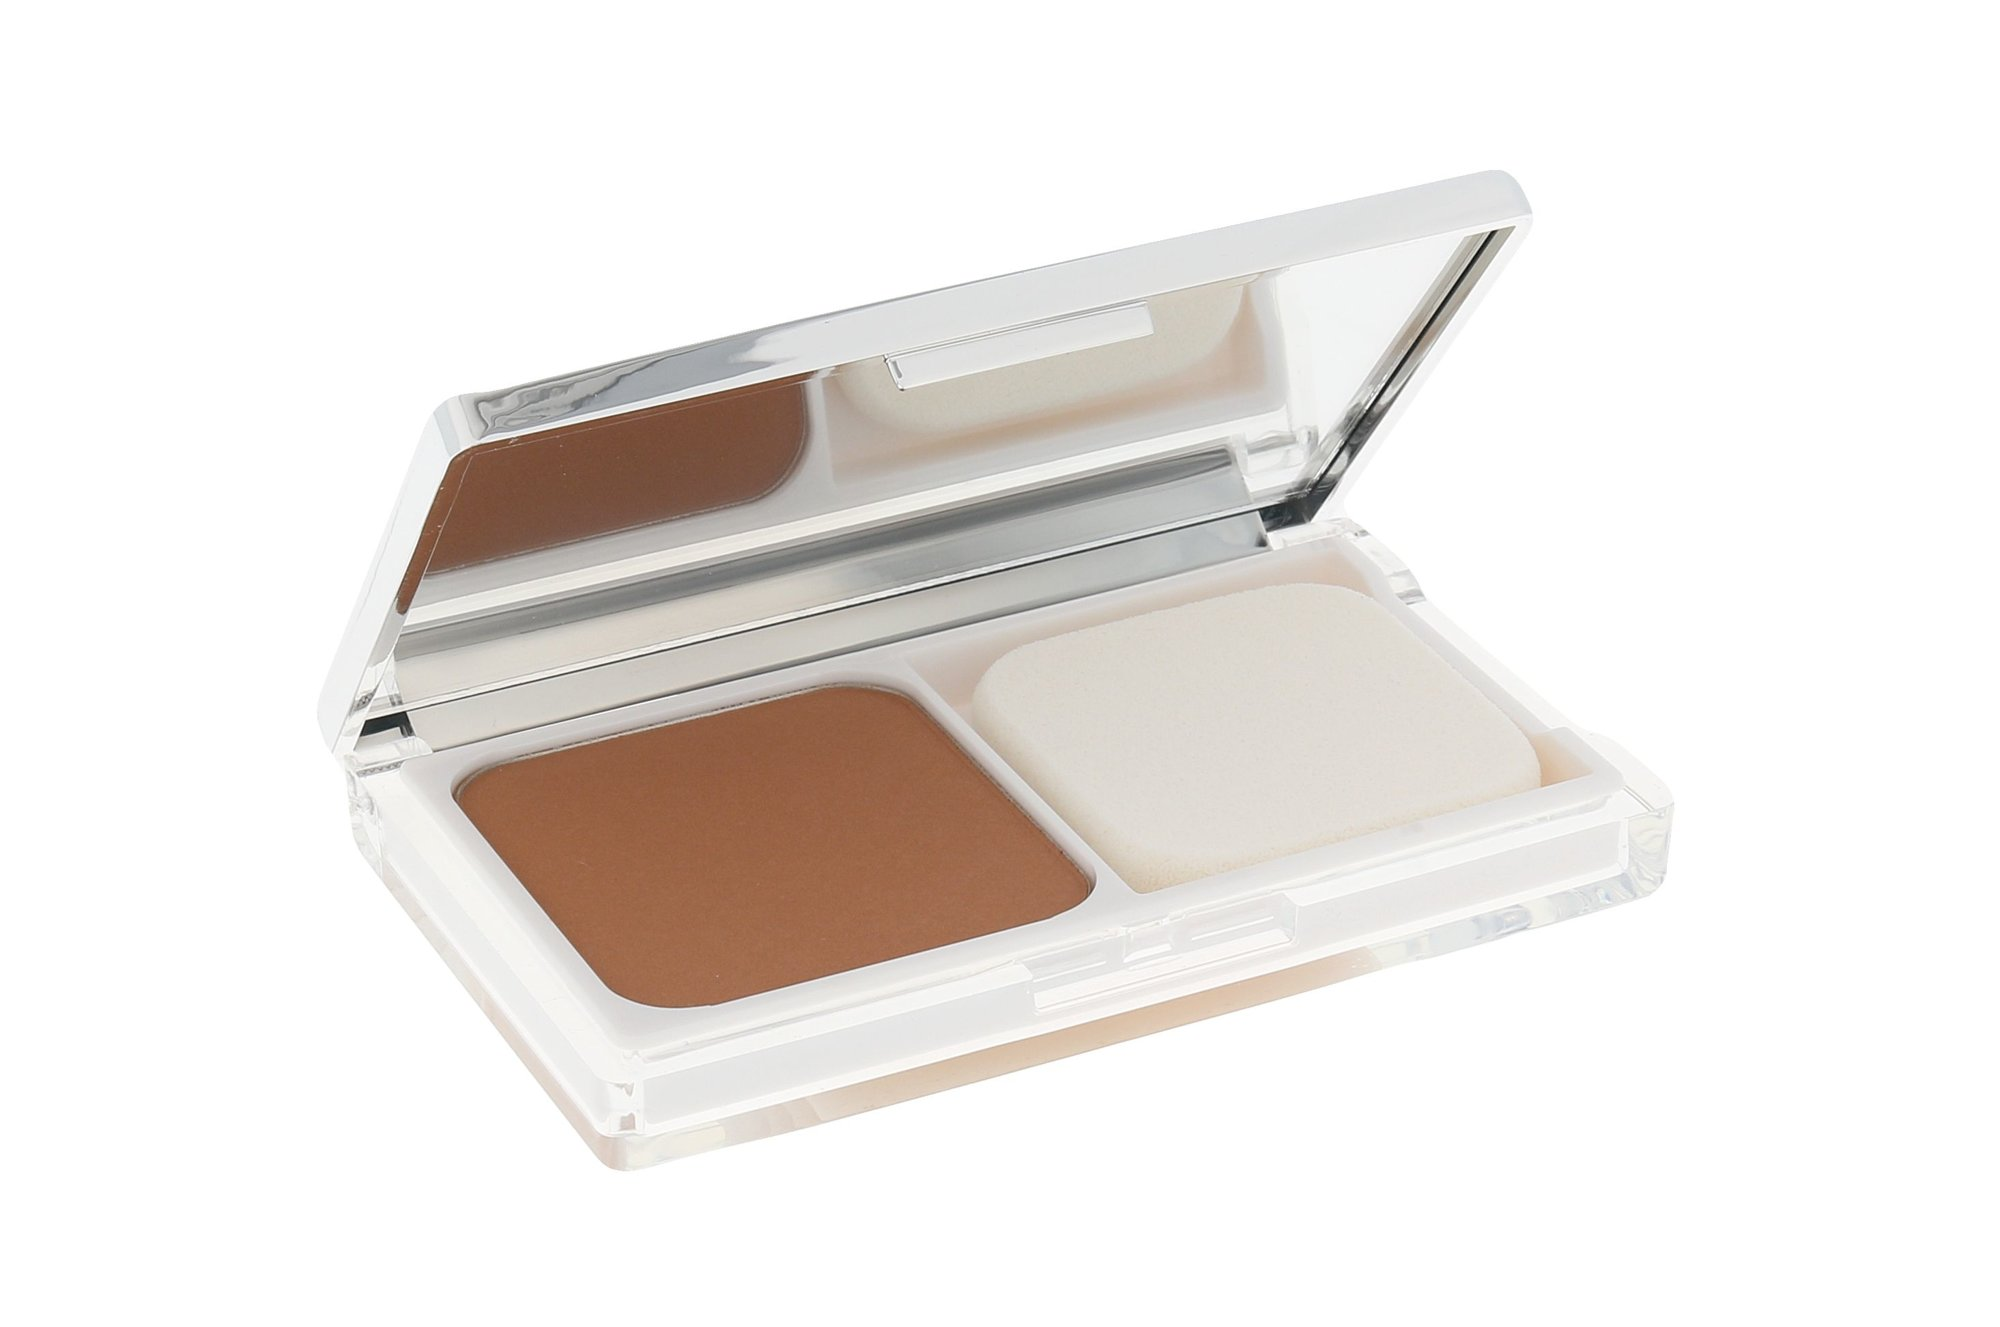 Clinique Acne Solutions Cosmetic 10ml 20 Deep Neutral Powder Makeup